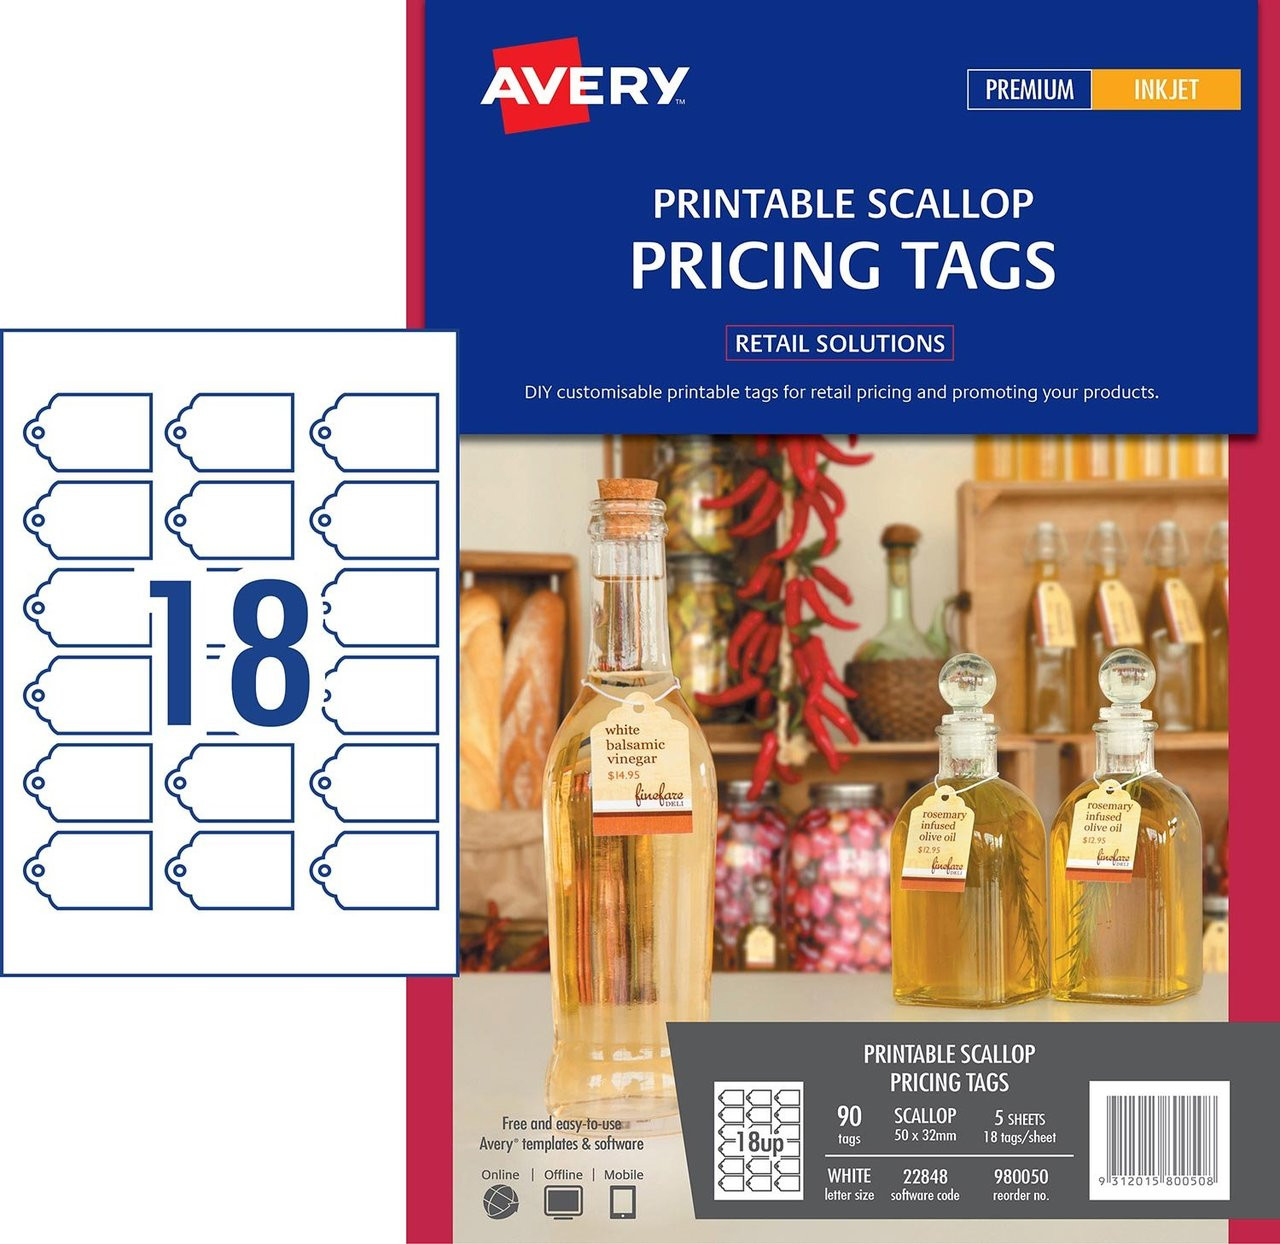 image relating to Avery Printable Tags titled AVERY 980050 PRINTABLE SCALLOP PRICING TAGS, 22848, 90/PACK, 50 X 32MM 18UP